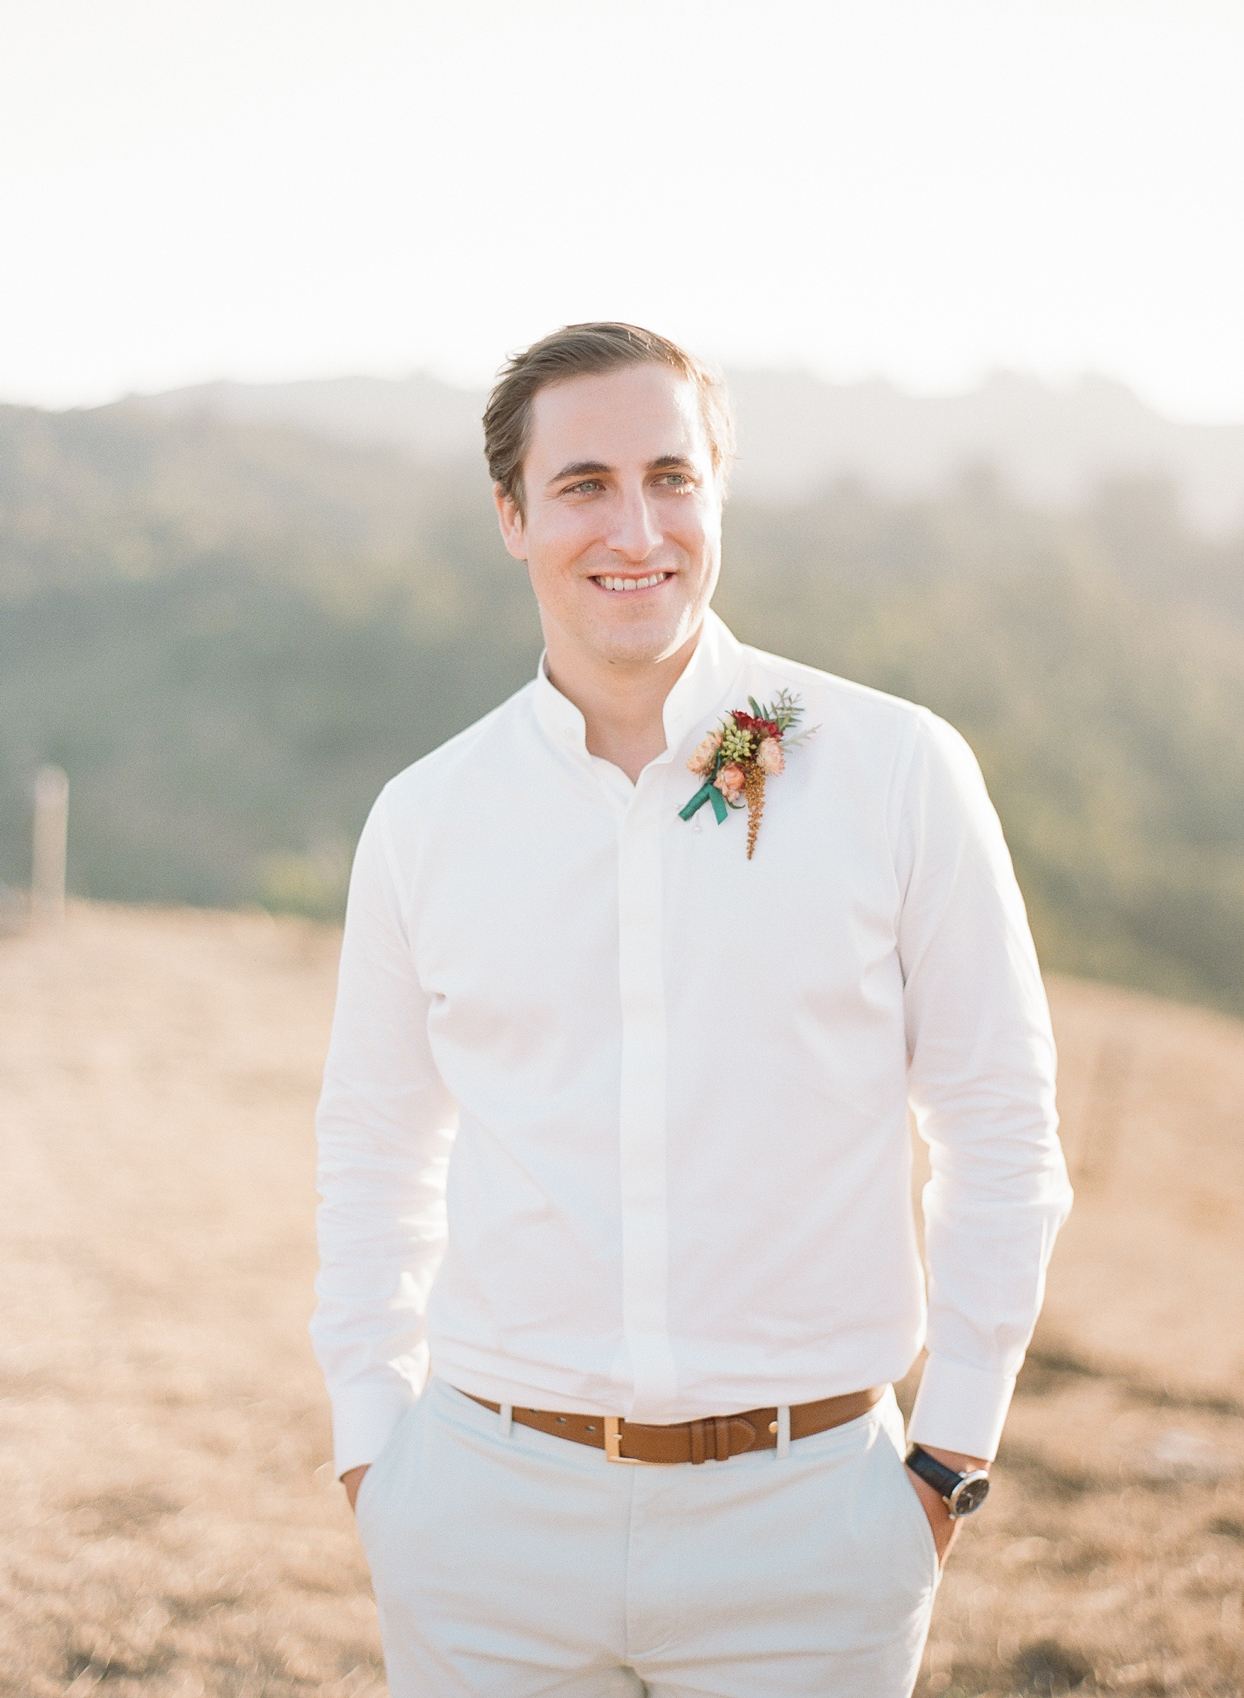 groom in white button up and light colored shorts